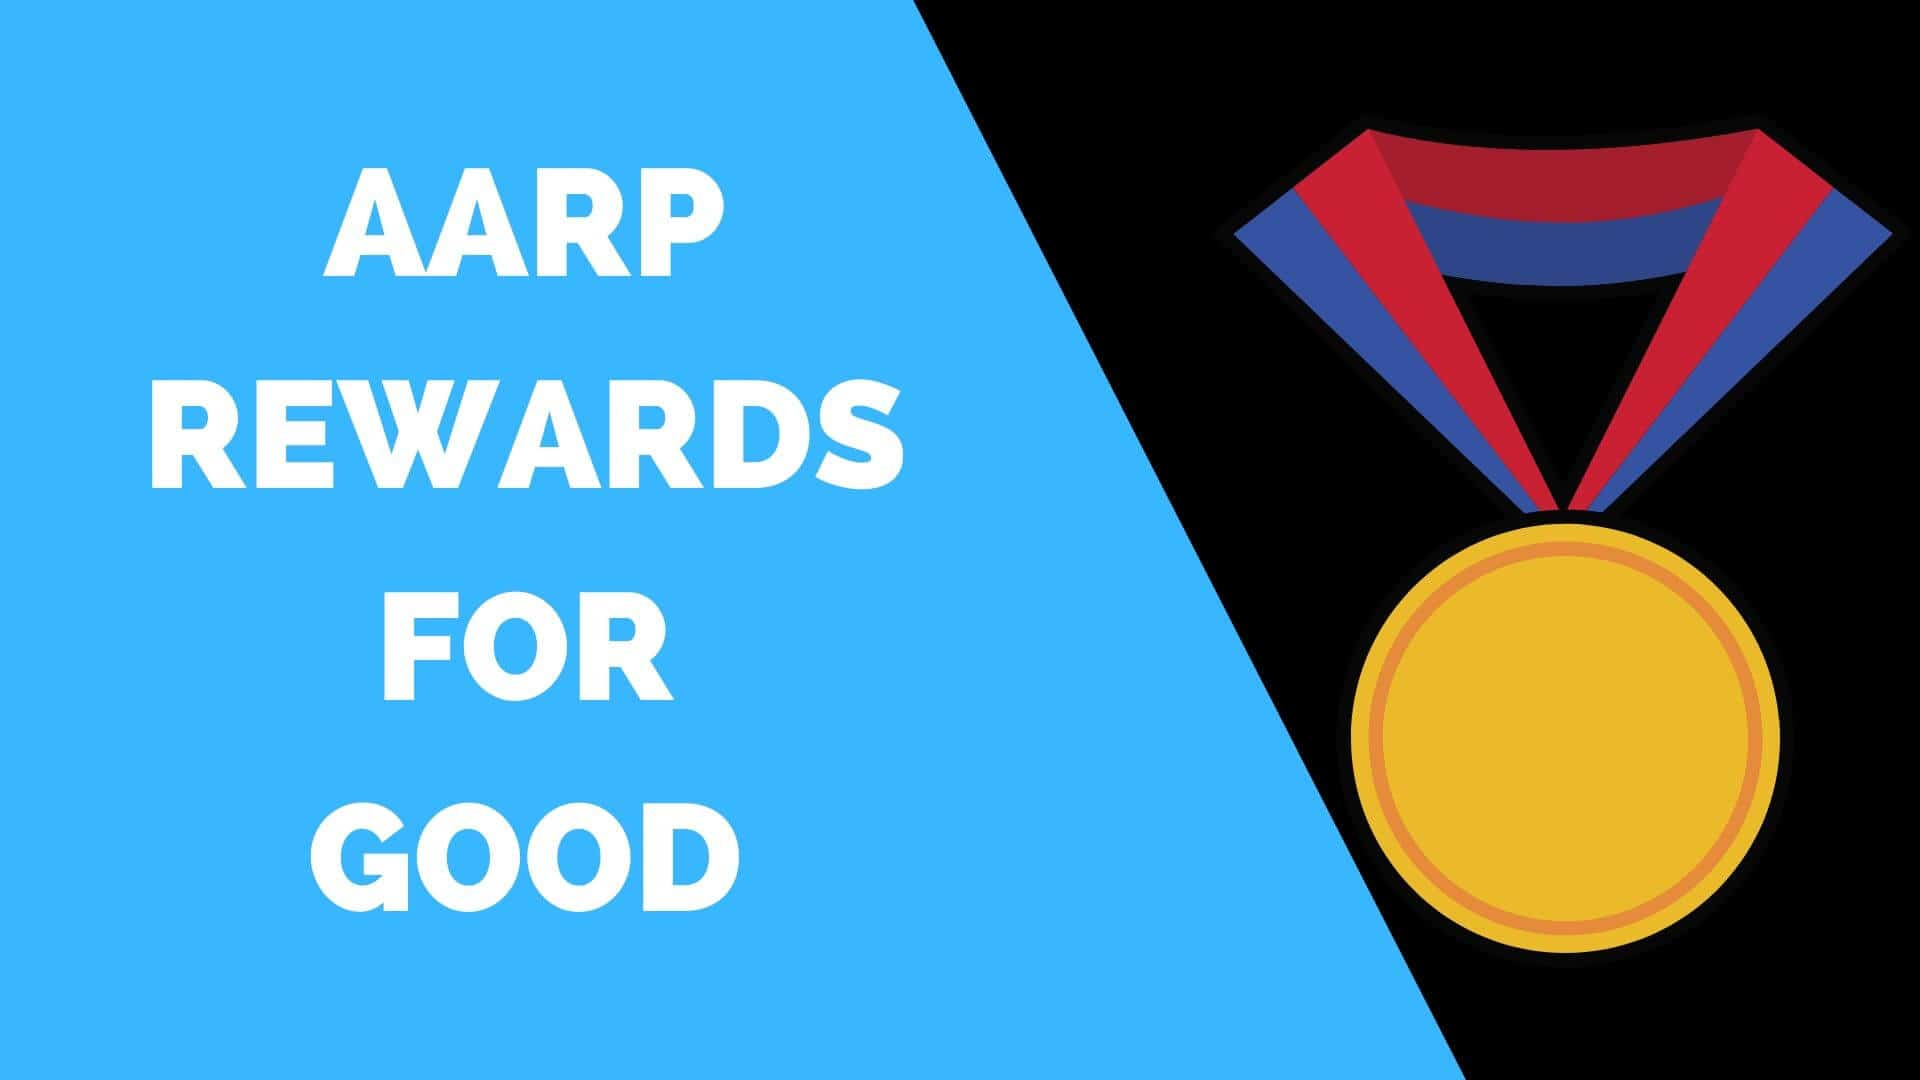 AARP Rewards for Good